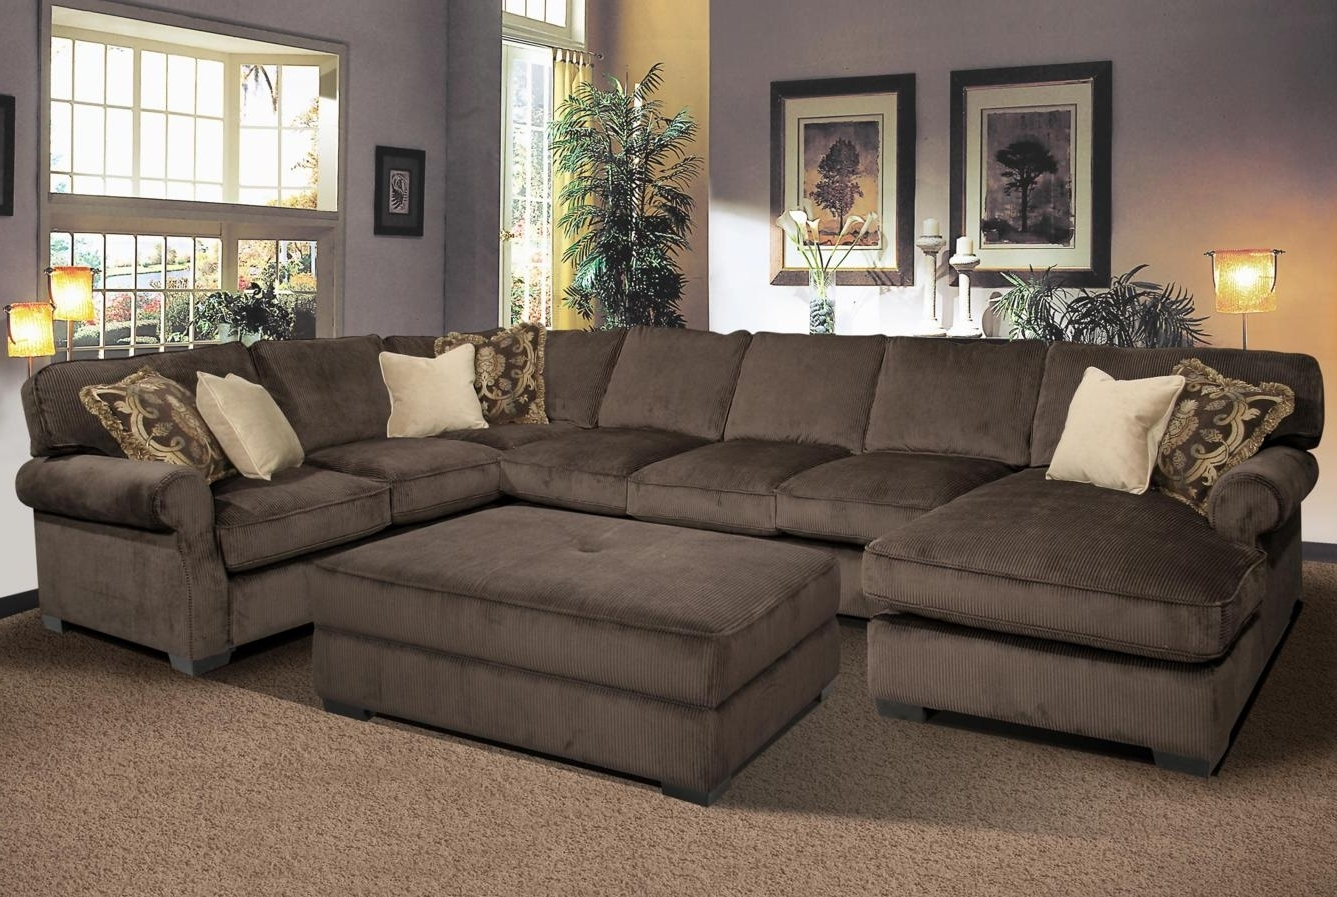 Most Current Inexpensive Sectional Sofas For Small Spaces Pertaining To Stylish Inexpensive Sectional Sofas For Small Spaces (View 14 of 15)